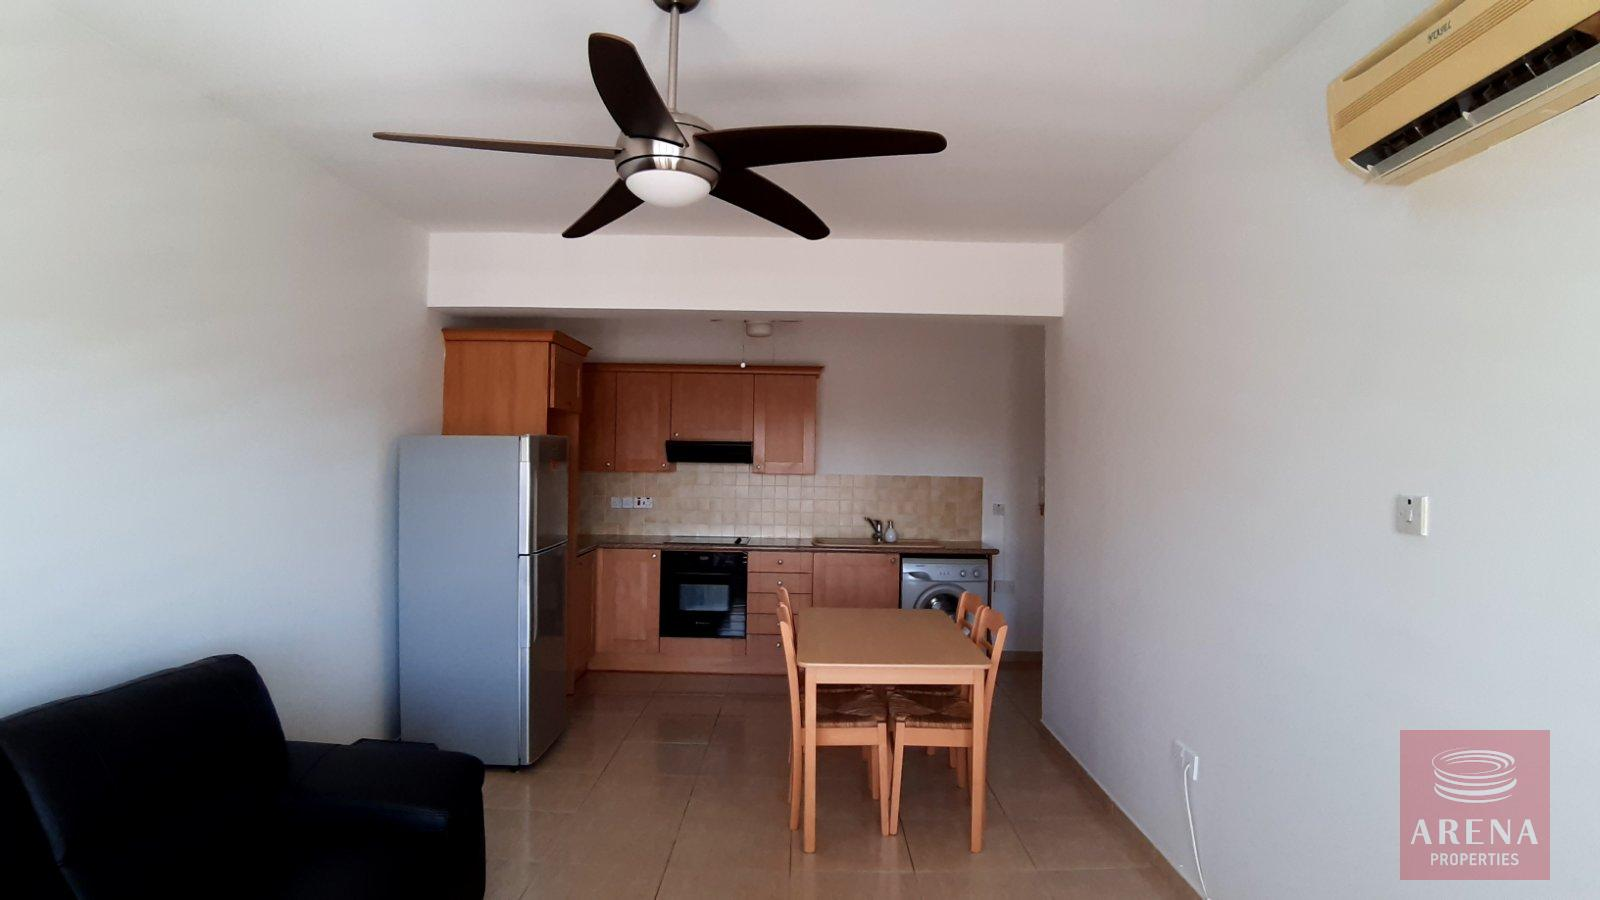 2 Bed Apt for rent in Paralimni - dining area